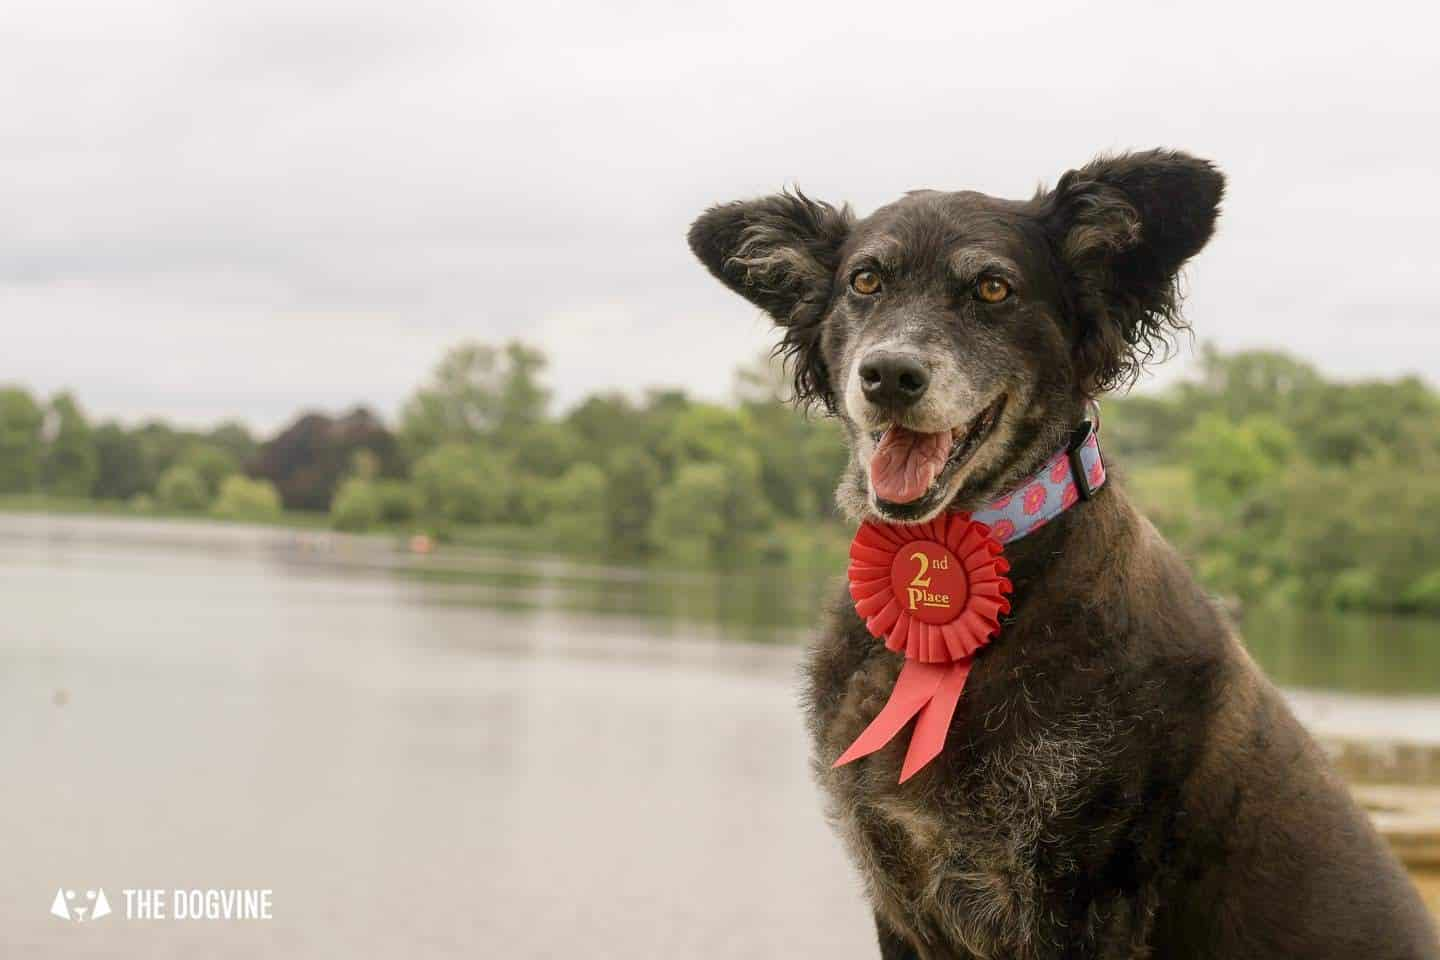 Virtual Dog Events - The Dogvine